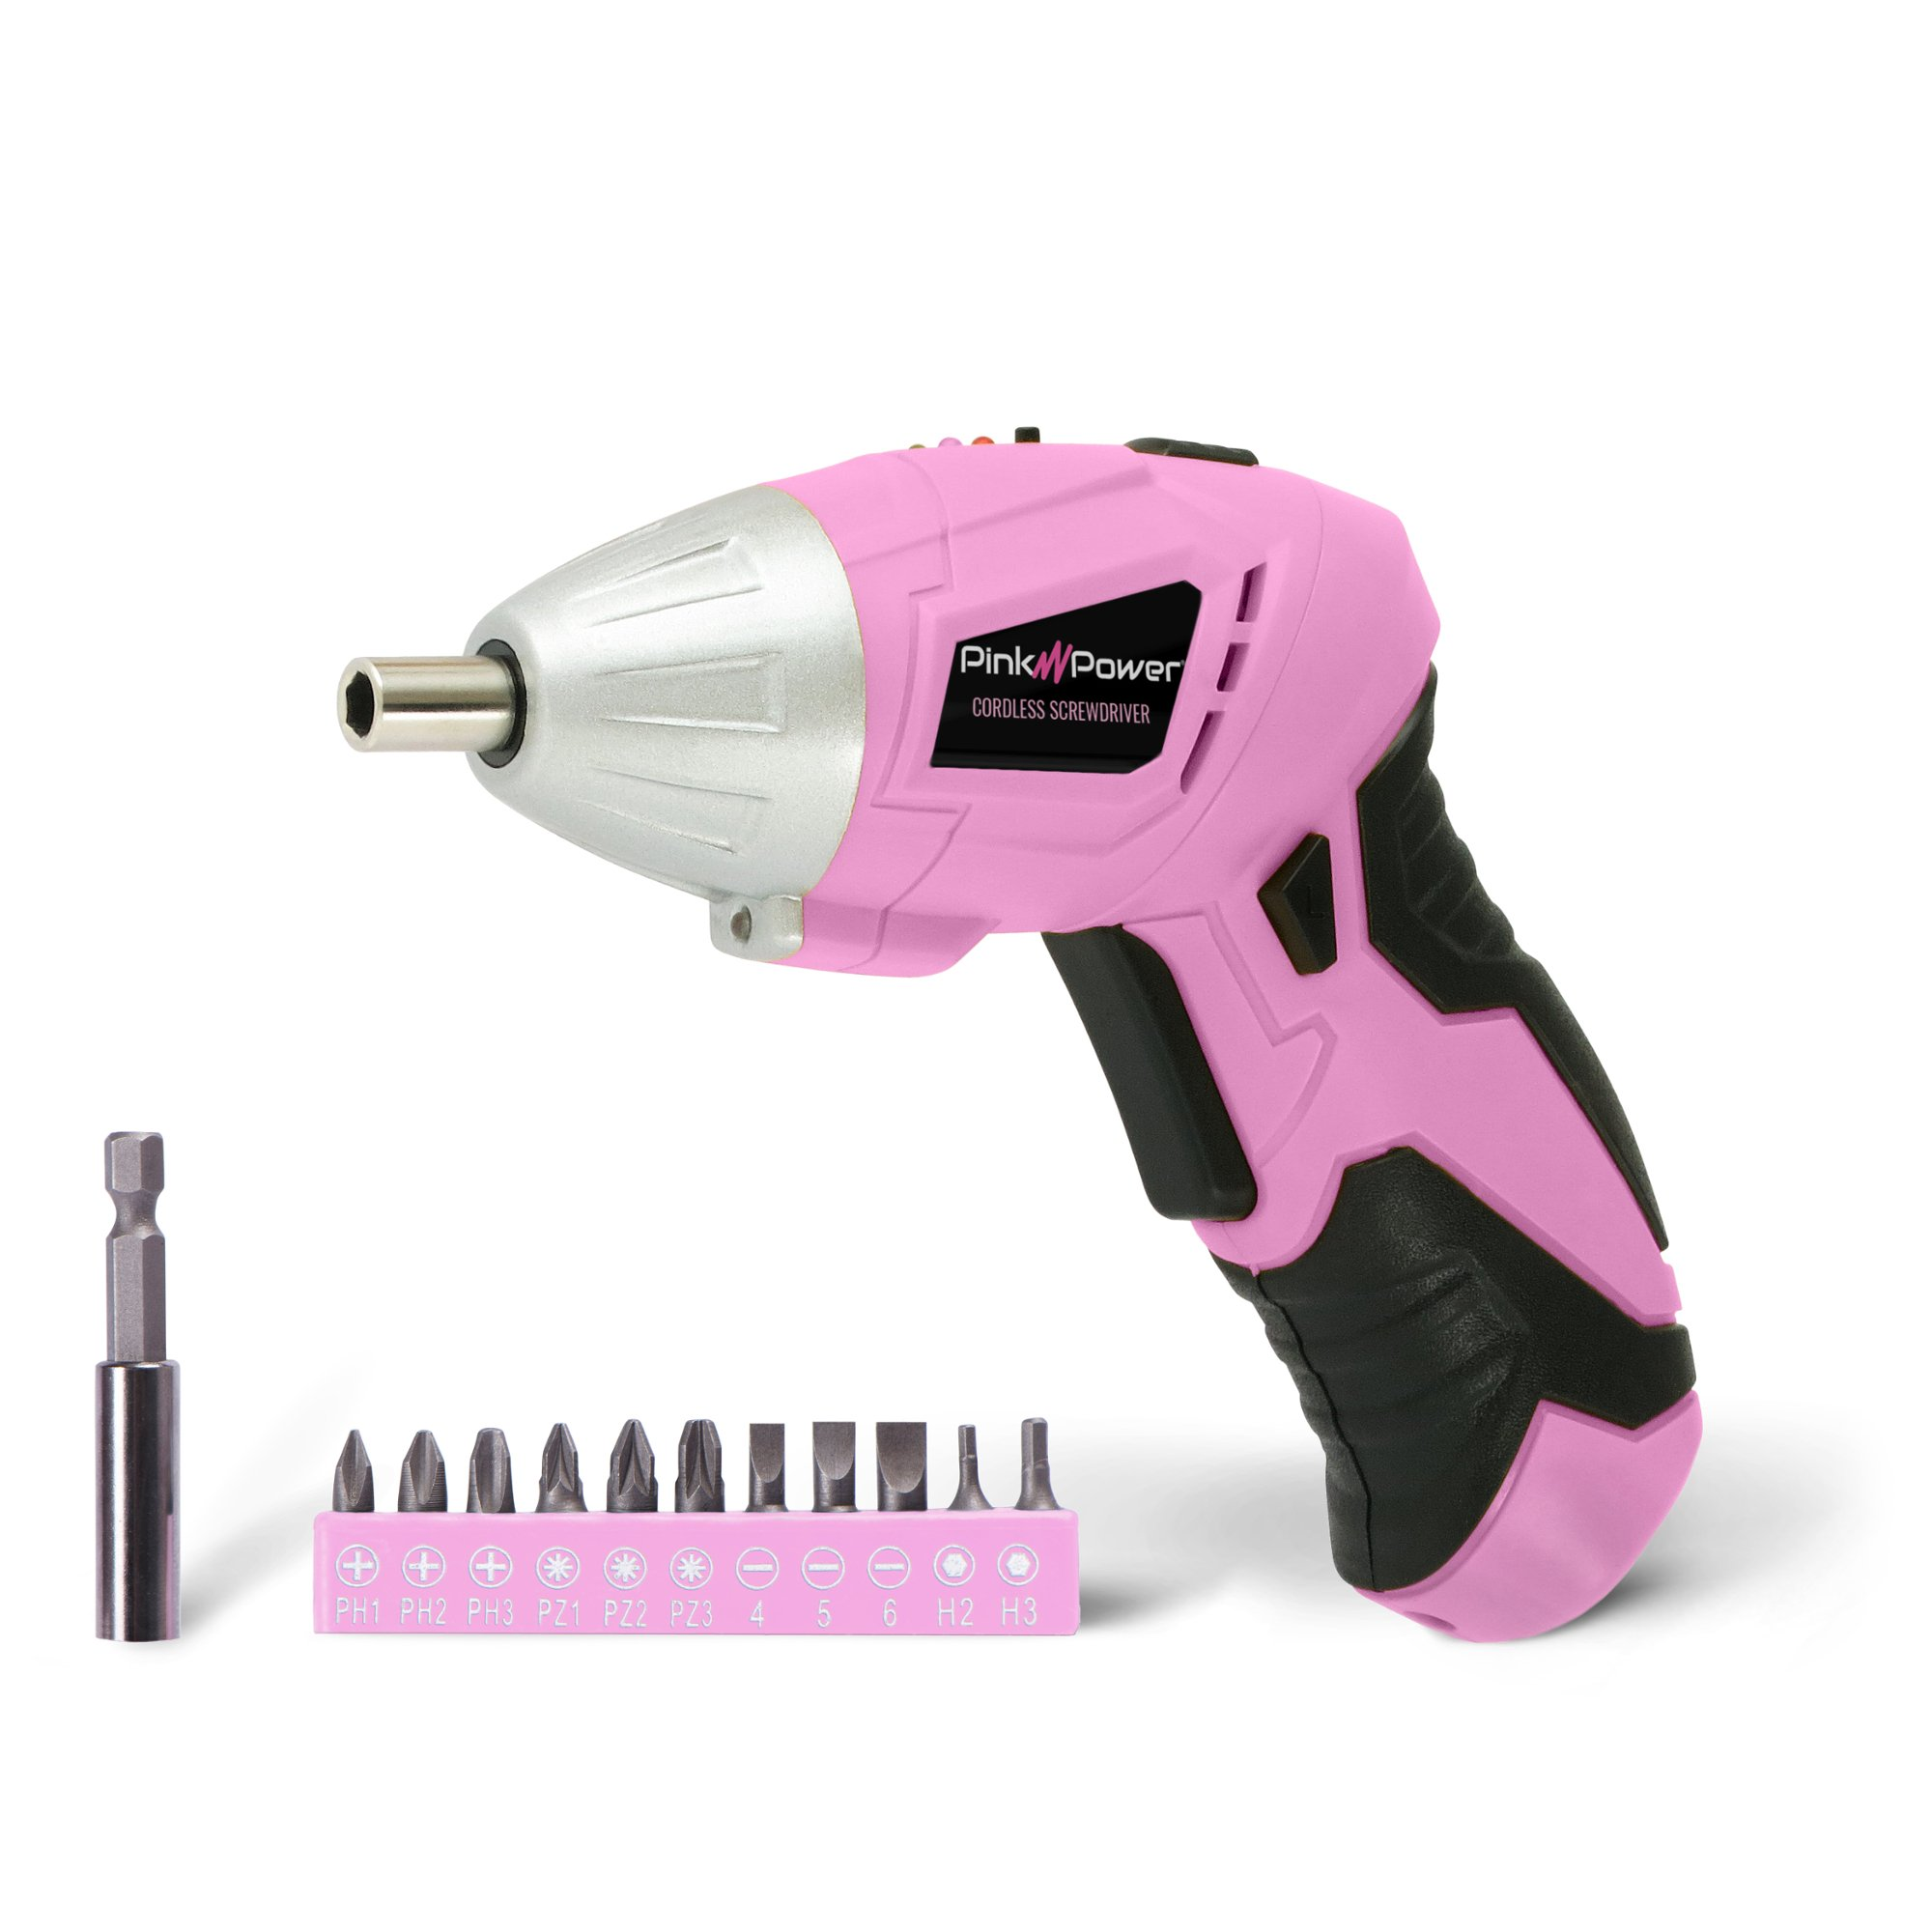 Pink Power PP481 3.6 Volt Cordless Electric Screwdriver Rechargeable Screw Gun & Bit Set for Women - LED light, Battery Indicator and Pivoting Head by Pink Power